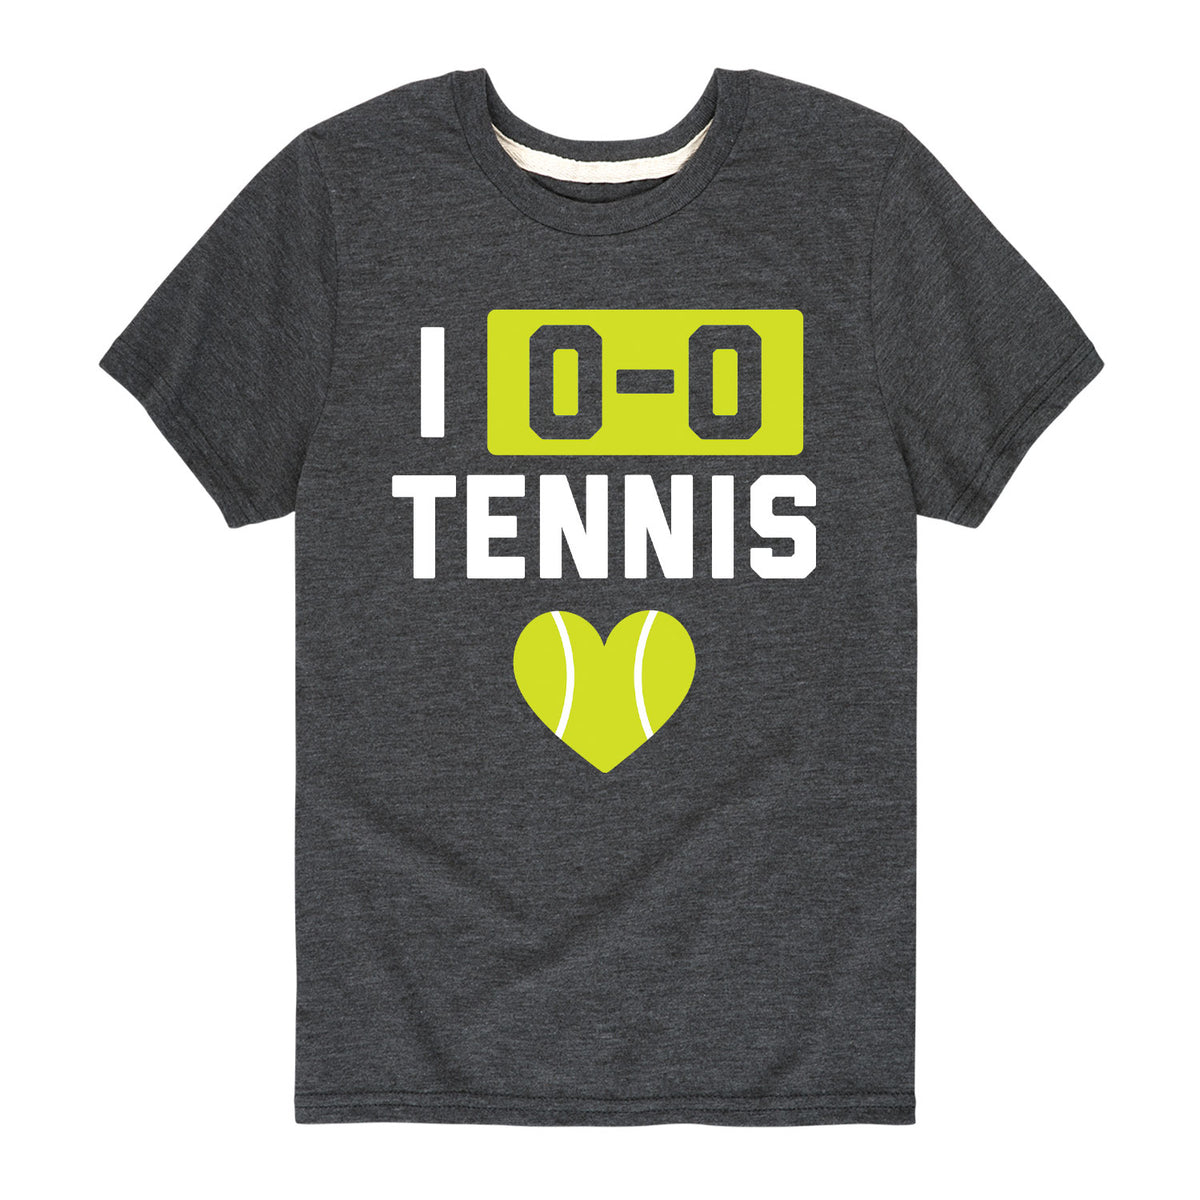 I Love Tennis - Youth & Toddler Short Sleeve T-Shirt